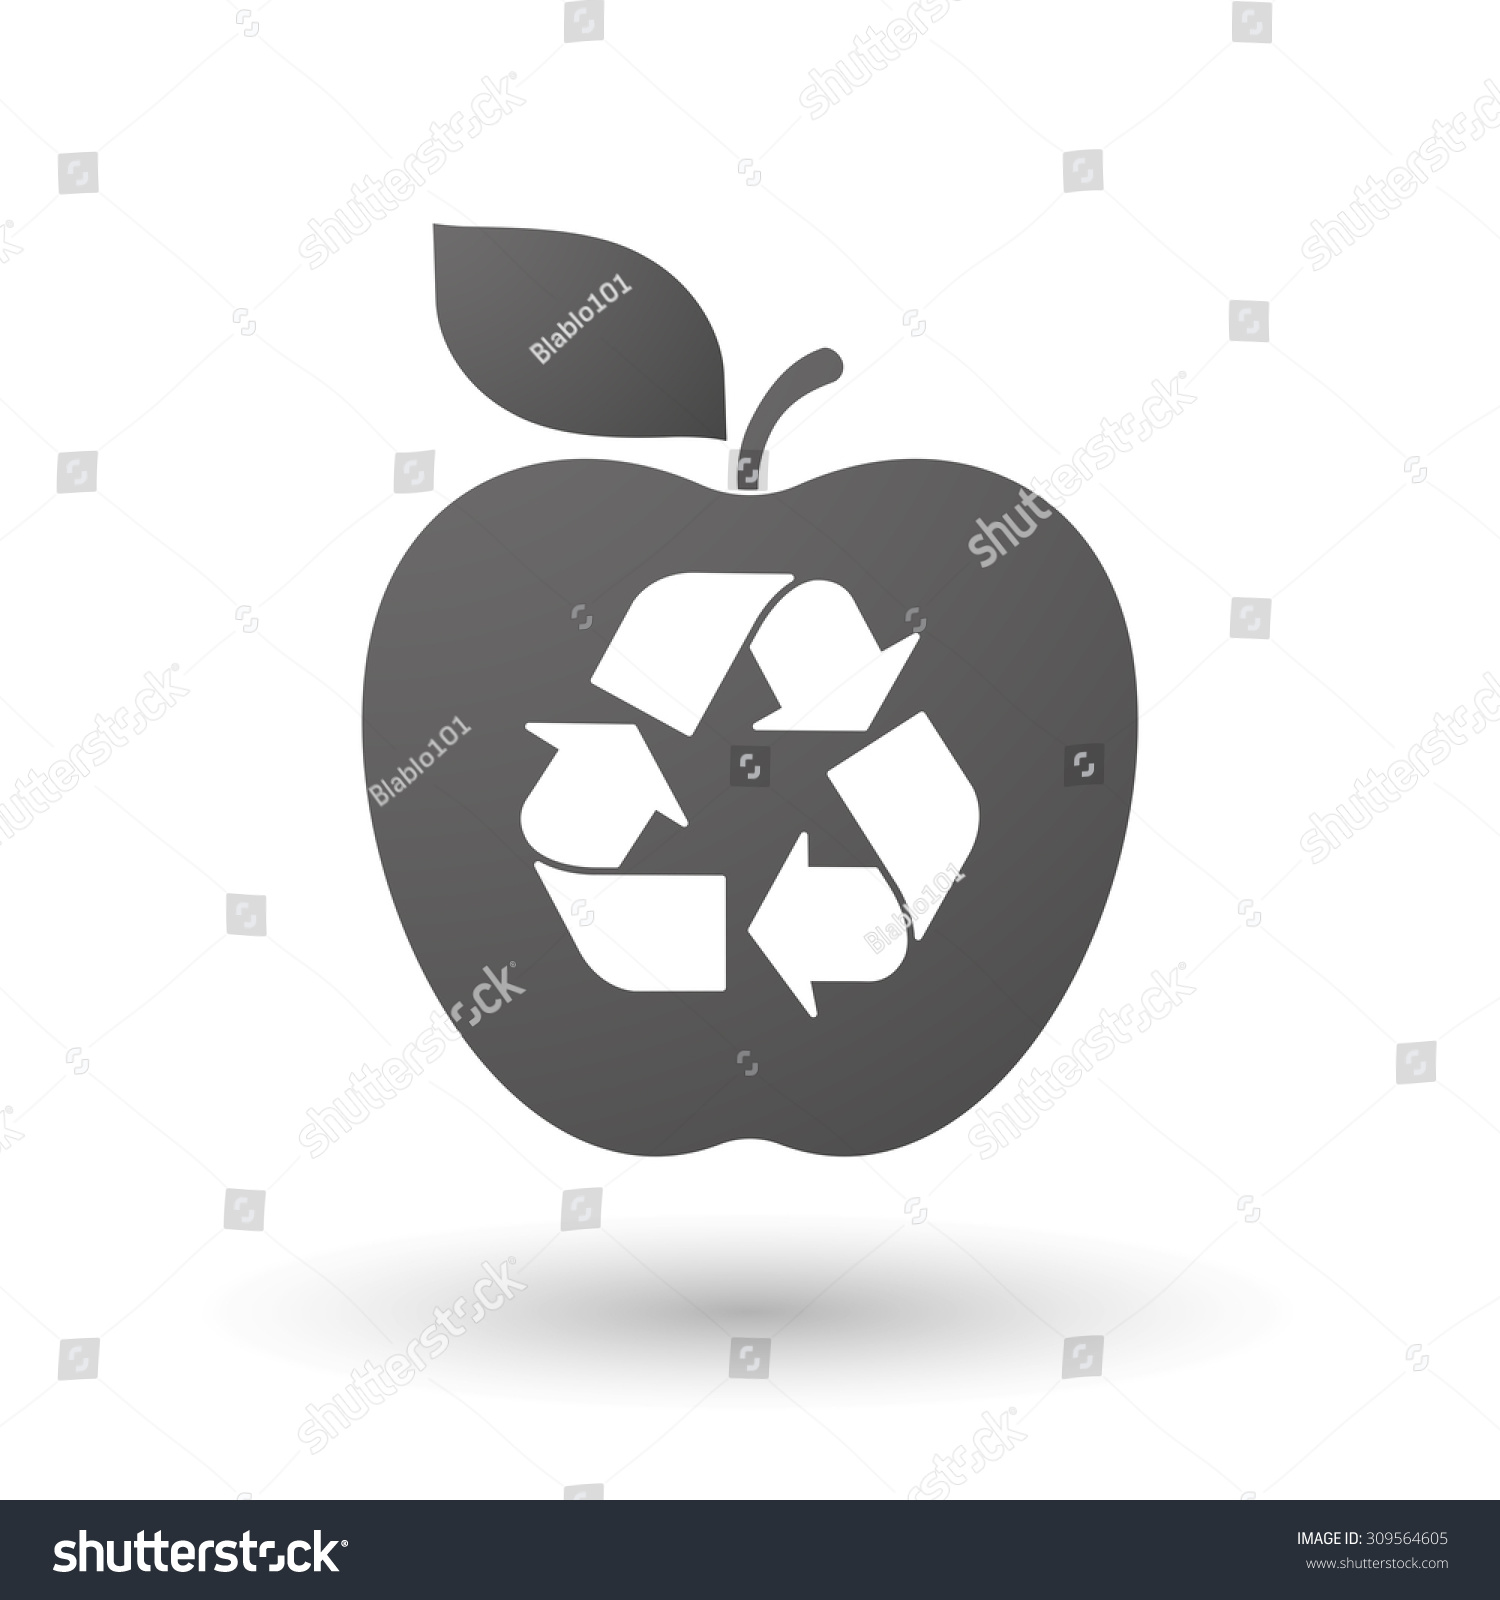 Illustration isolated apple recycle sign stock vector 309564605 illustration isolated apple recycle sign stock vector 309564605 shutterstock buycottarizona Image collections